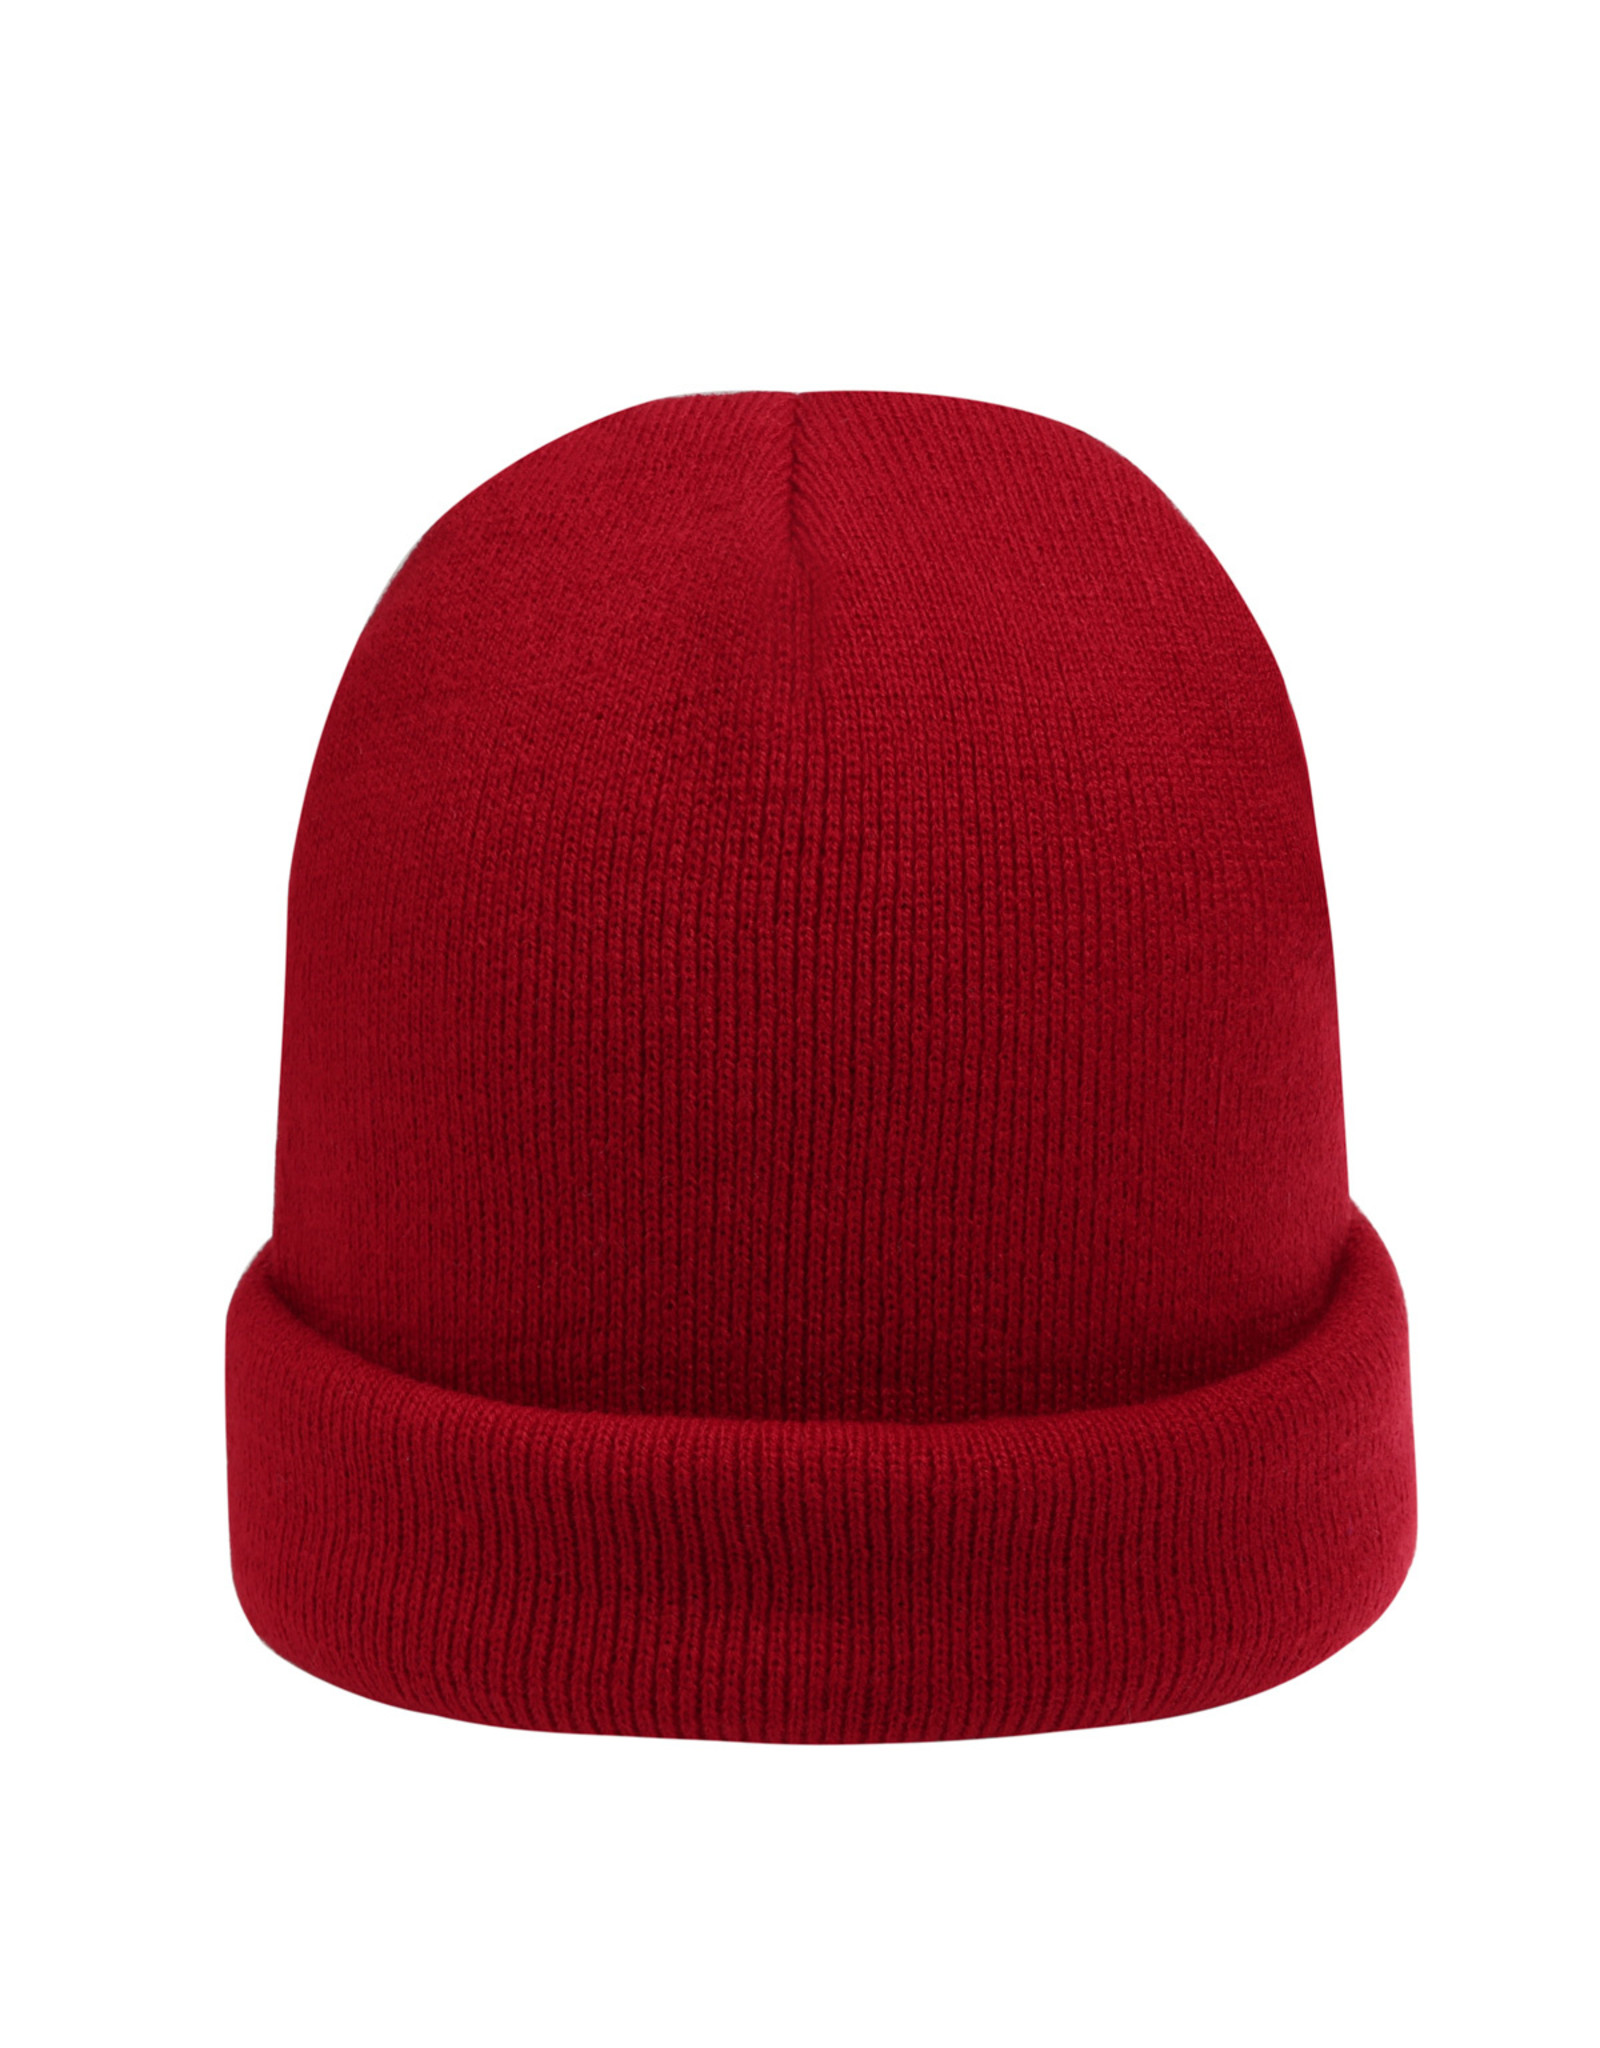 BEANIE DARK RED